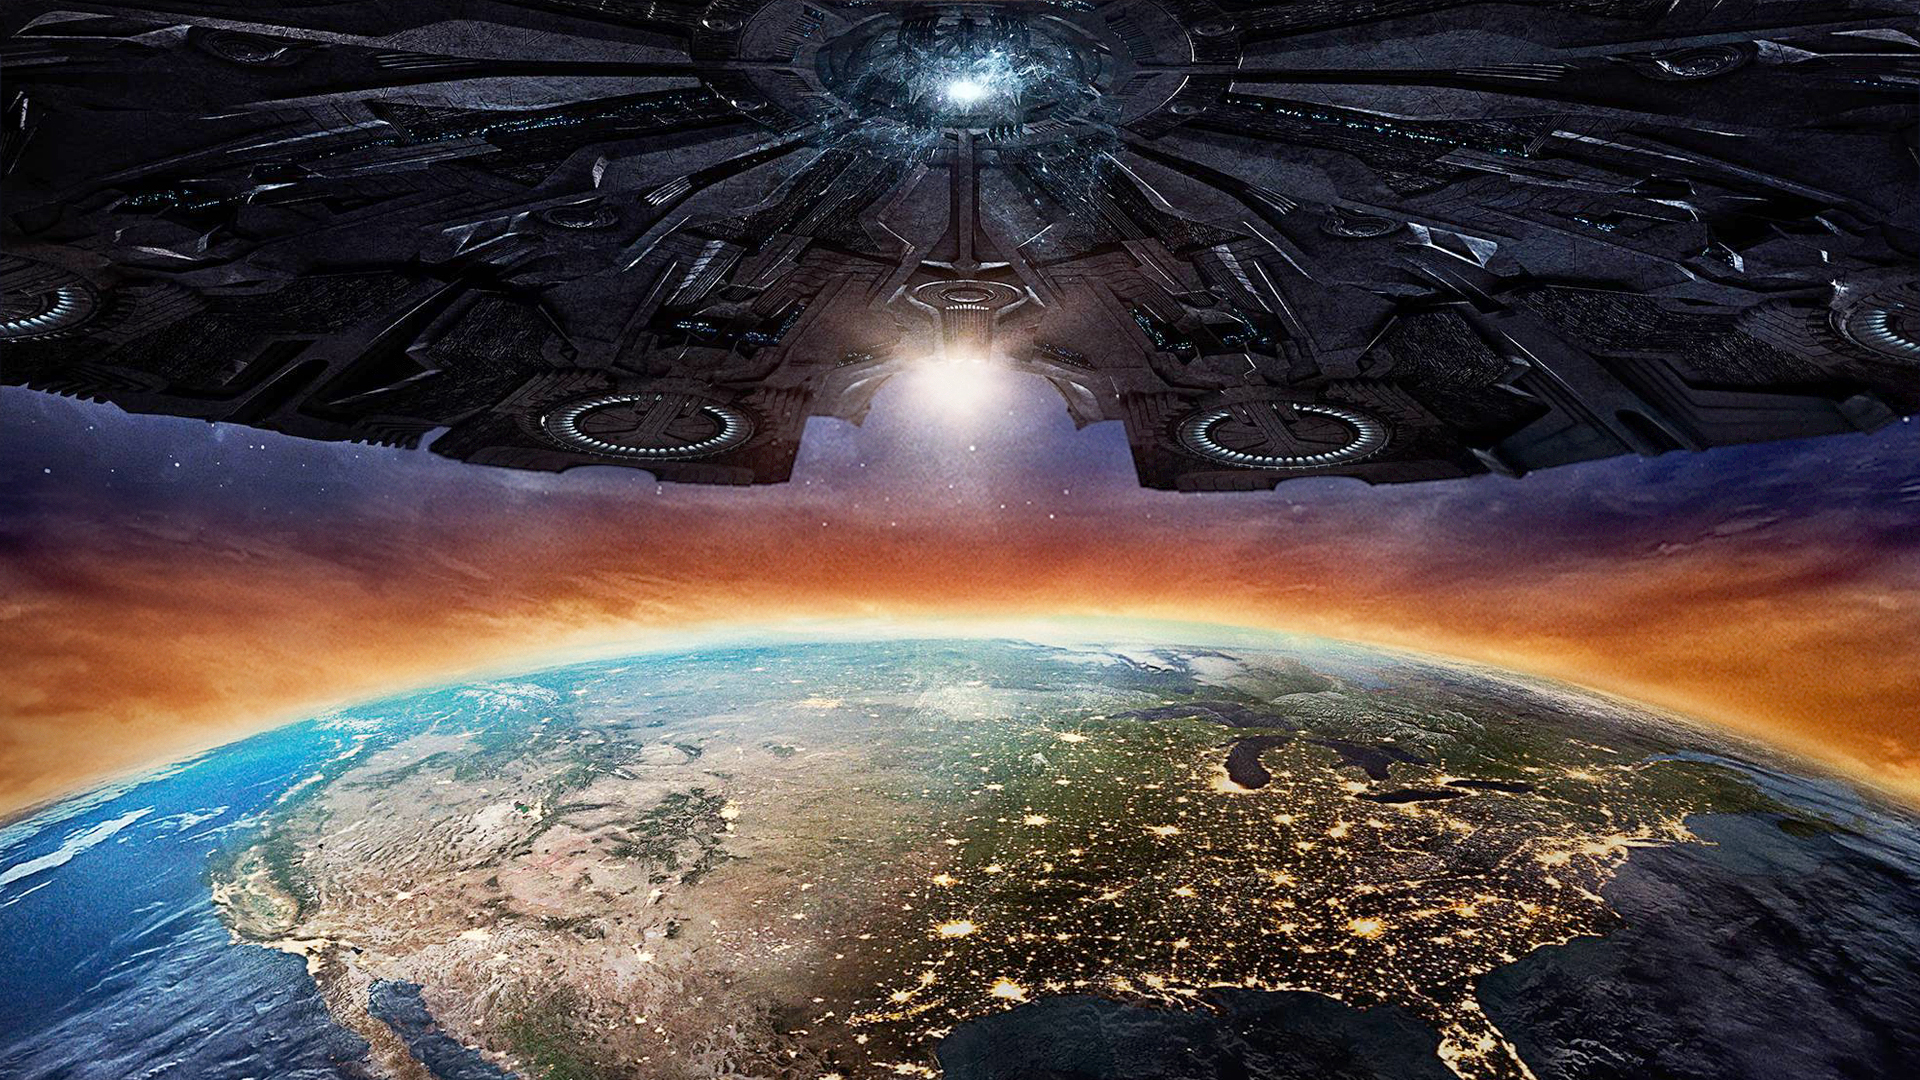 Independence Day Resurgence Wallpaper 1920x1080 by sachso74 on 1920x1080